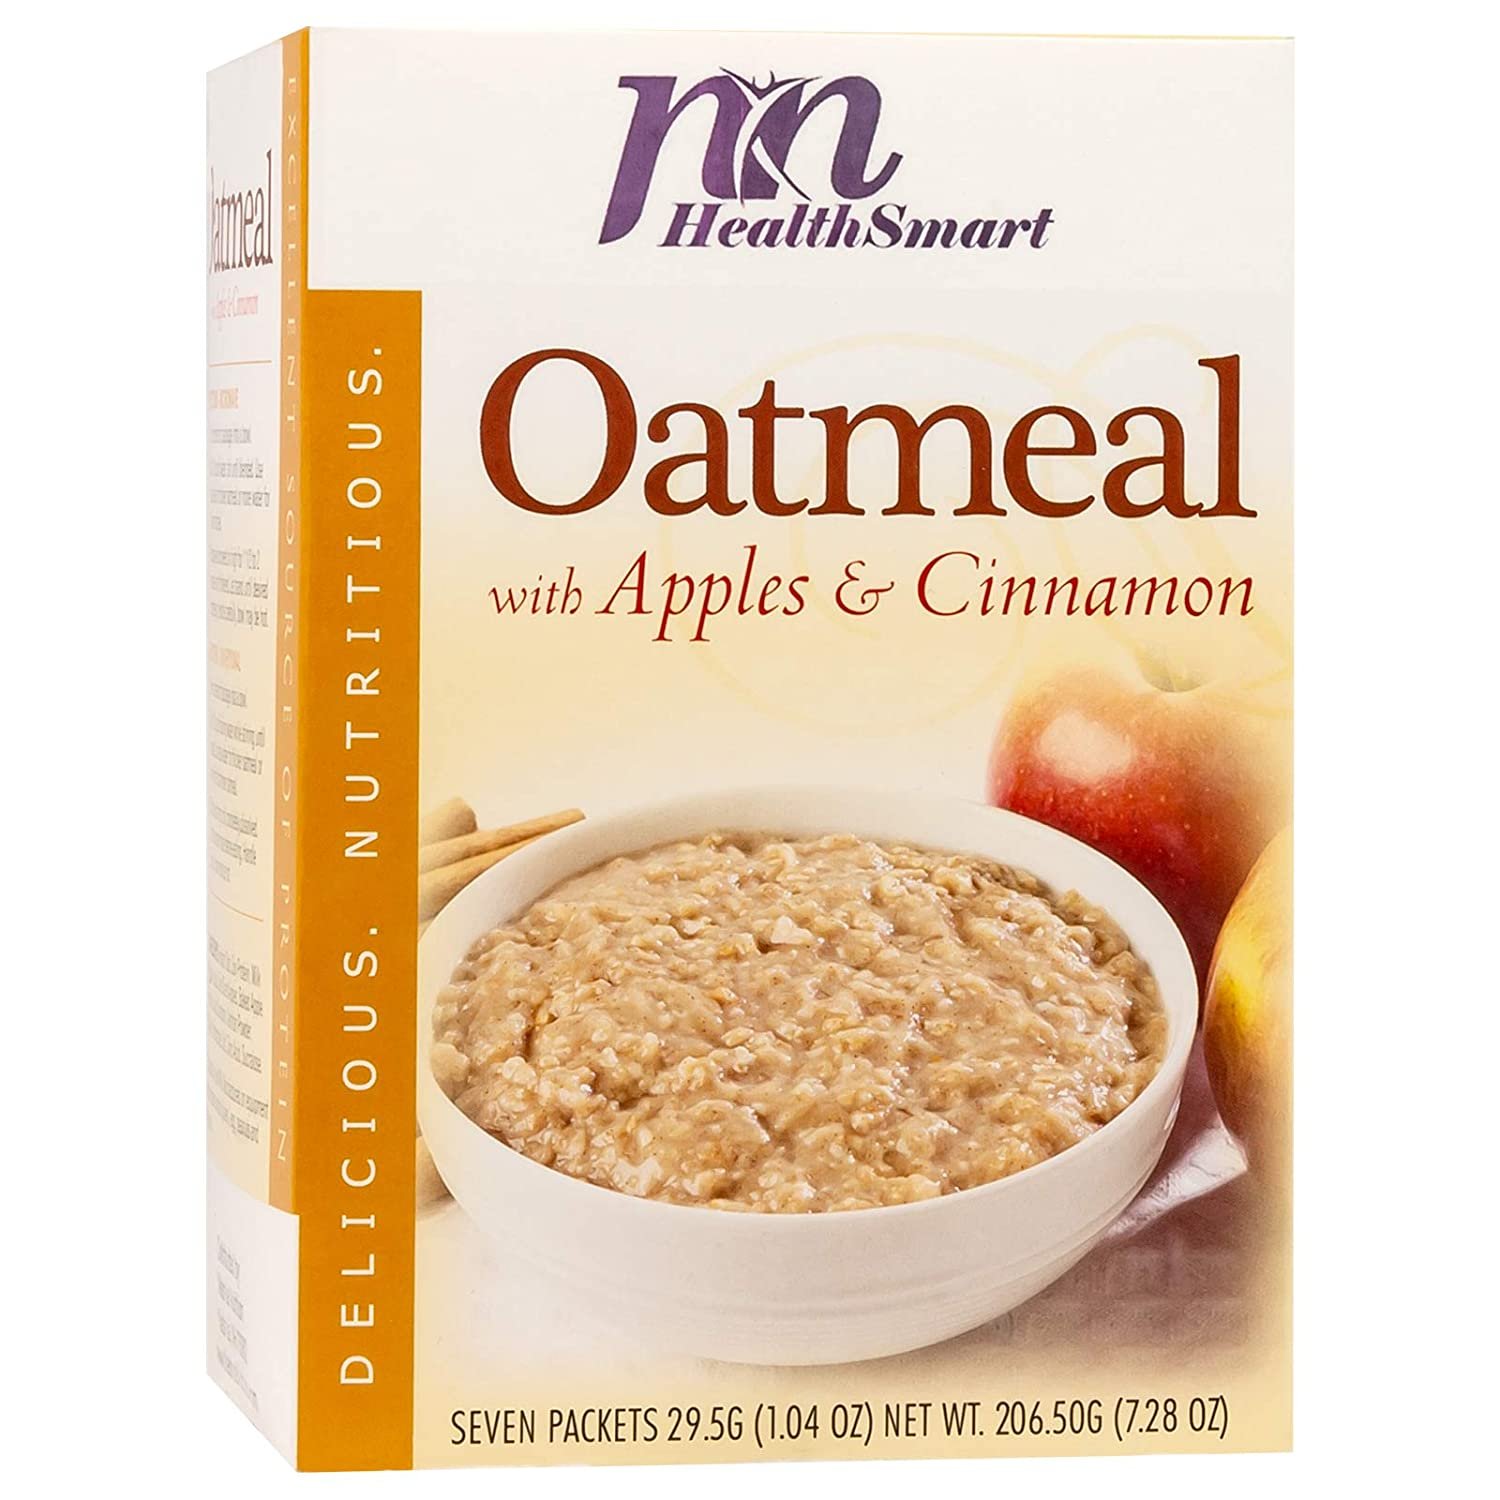 HealthSmart High Protein Apples and Cinnamon Oatmeal, 15g Protein, Low Calorie, Low Carb, Low Fat, Instant Diet Oatmeal Mix, KETO Friendly, Ideal Protein Compatible, 7 Count Box